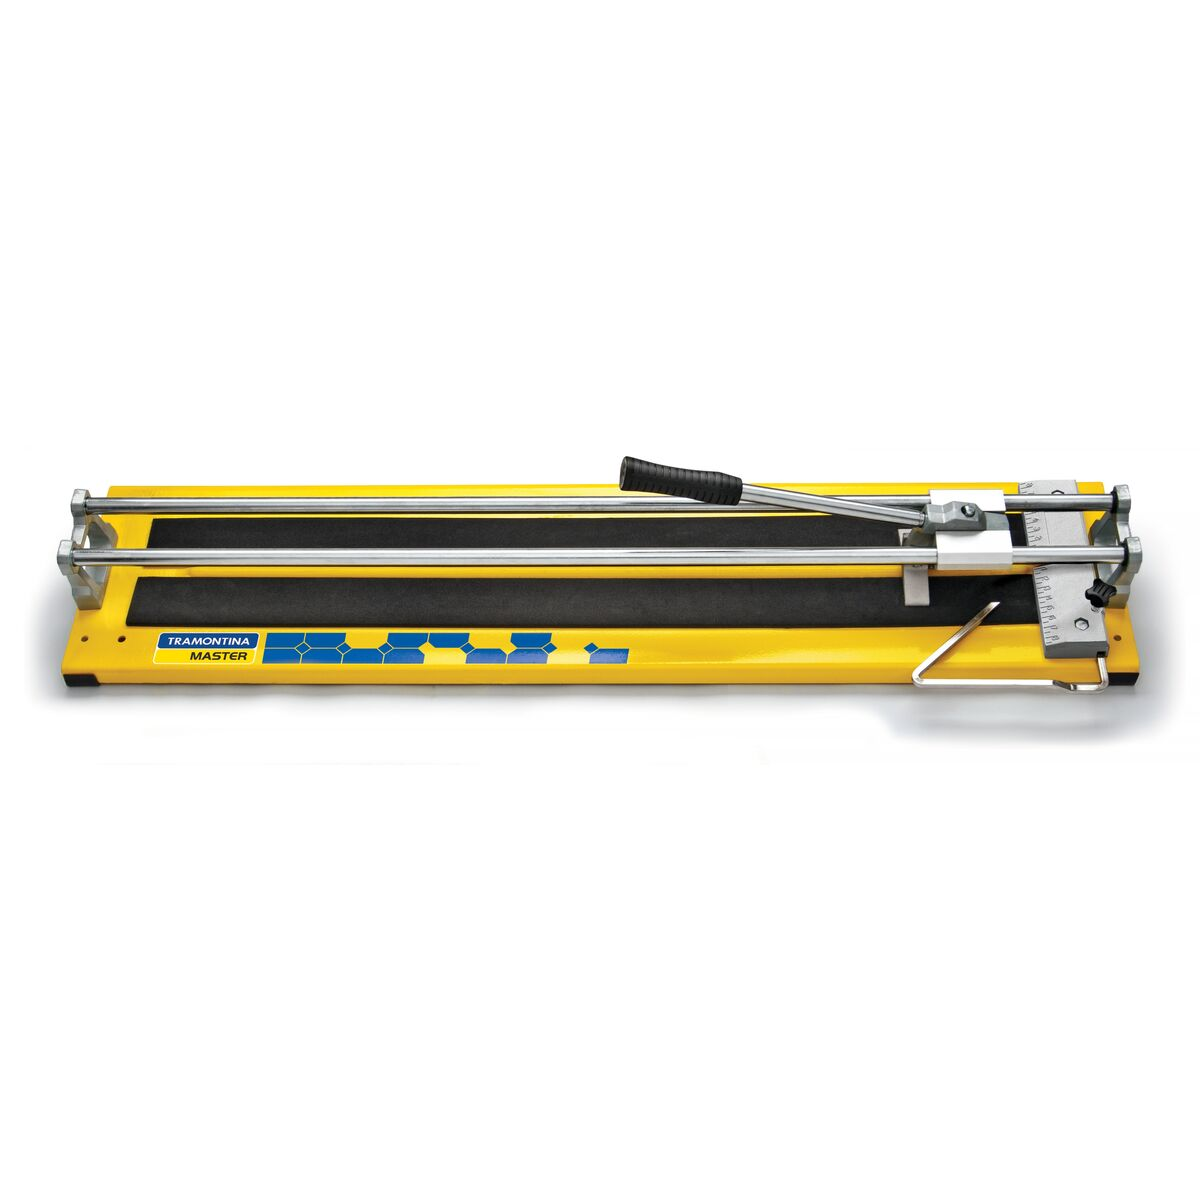 Tramontina 500 mm floor and tile cutter dailygadgetfo Choice Image